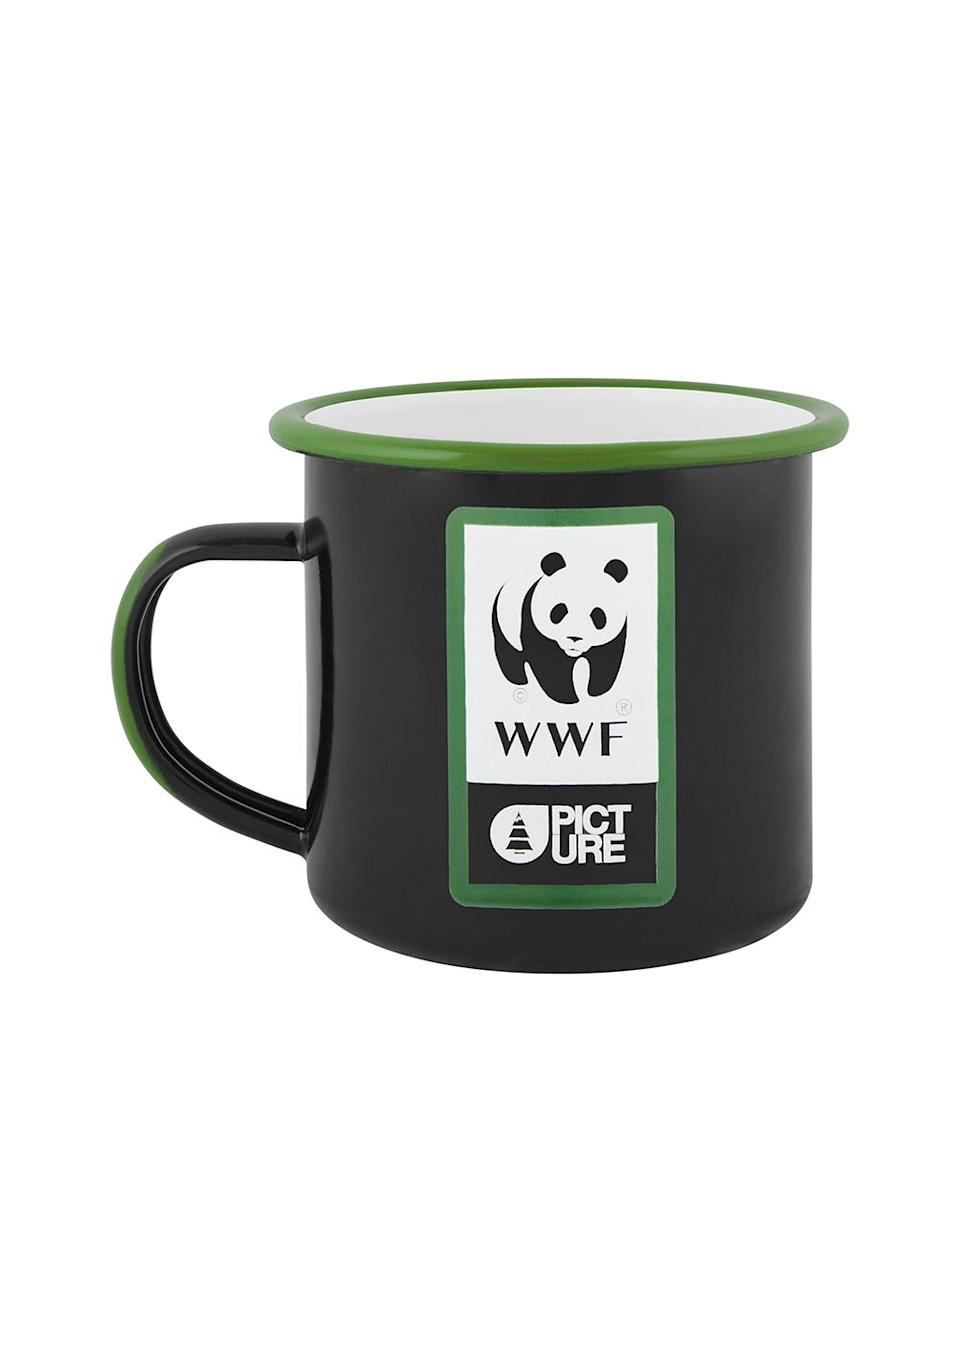 """12 €<br><br><a href=""""https://www.picture-organic-clothing.com/collection/fr/gourdes-thermos/3306-wwf-sherman-cup.html?search_query=wwf&results=19"""" rel=""""nofollow noopener"""" target=""""_blank"""" data-ylk=""""slk:Acheter"""" class=""""link rapid-noclick-resp"""">Acheter</a>"""